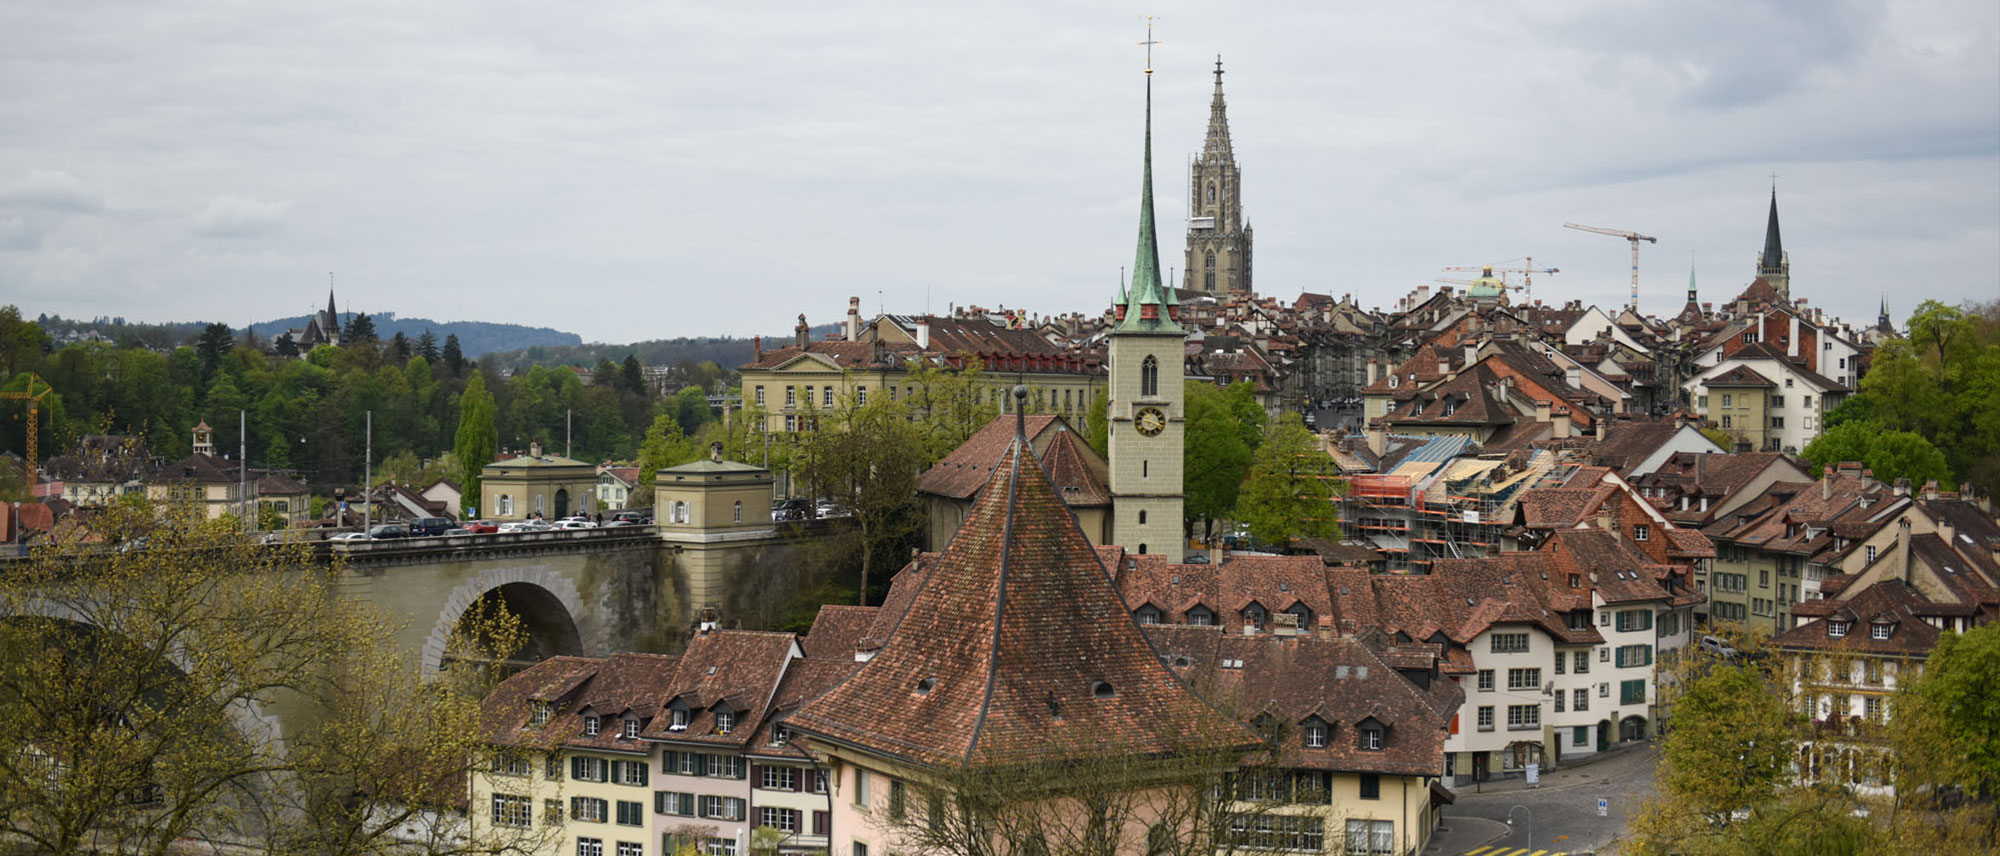 St. Paul's Church bern.jpg